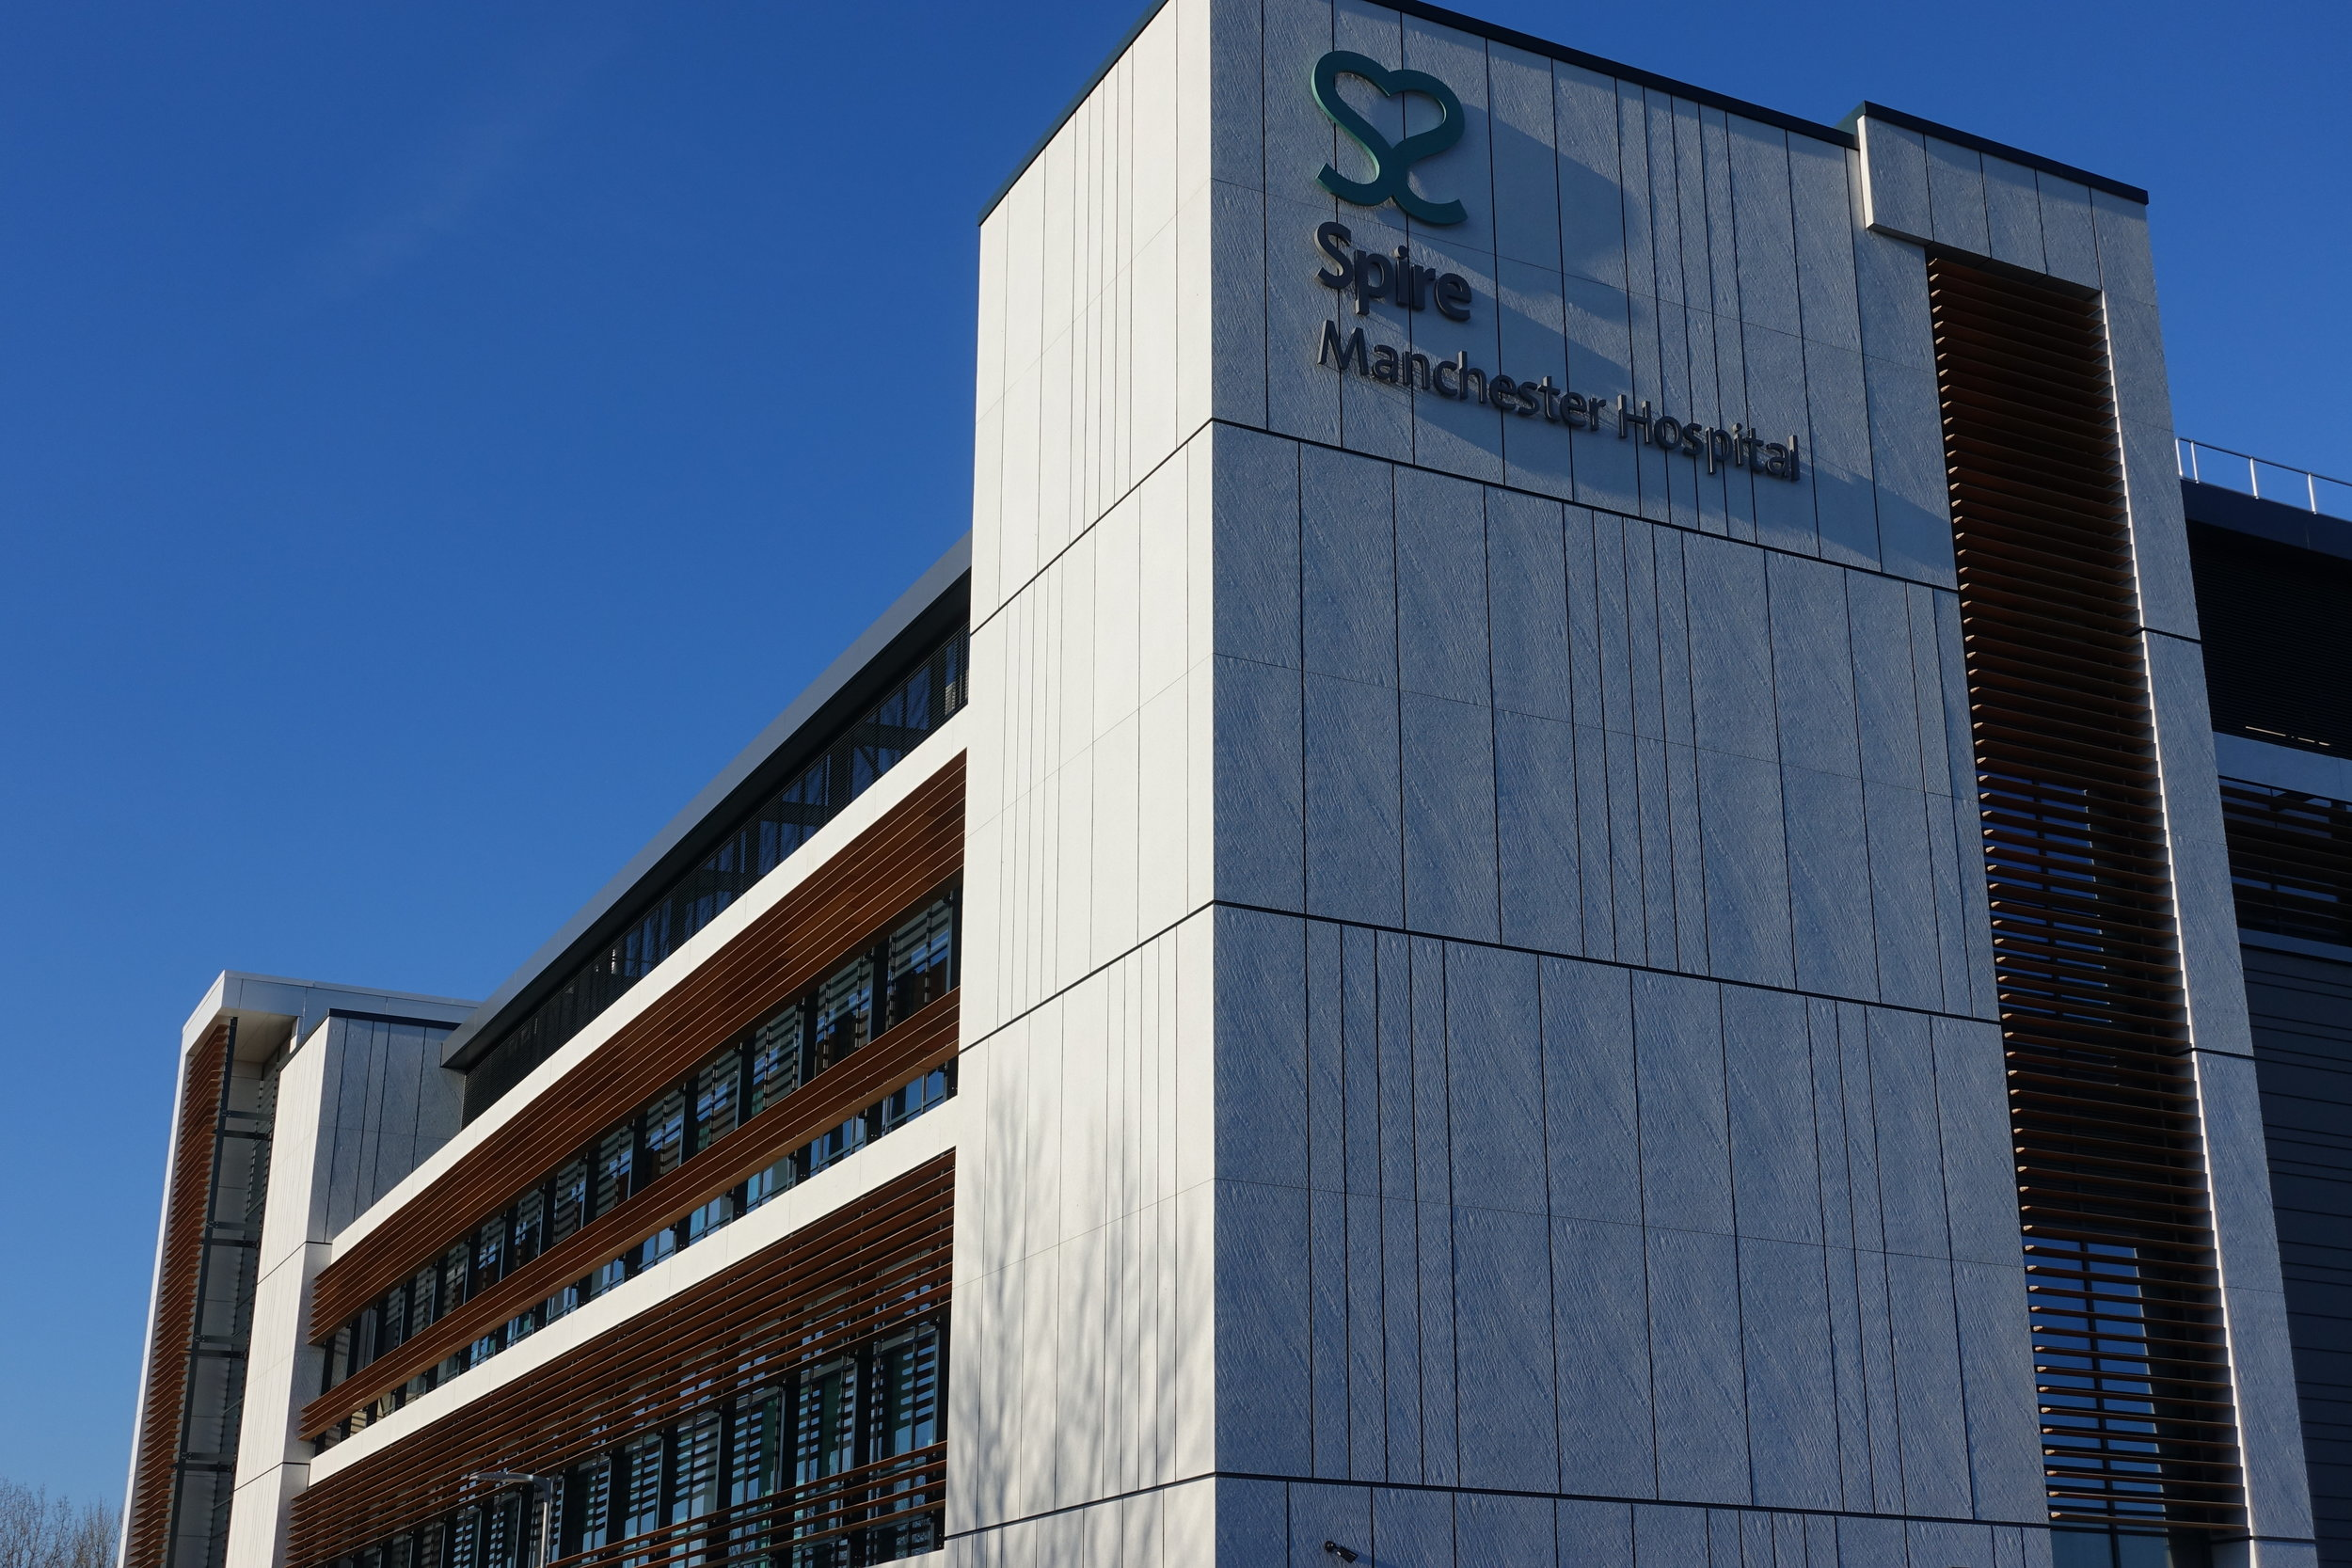 The new Spire Hospital Manchester in Didsbury as photographed by Mr Muir